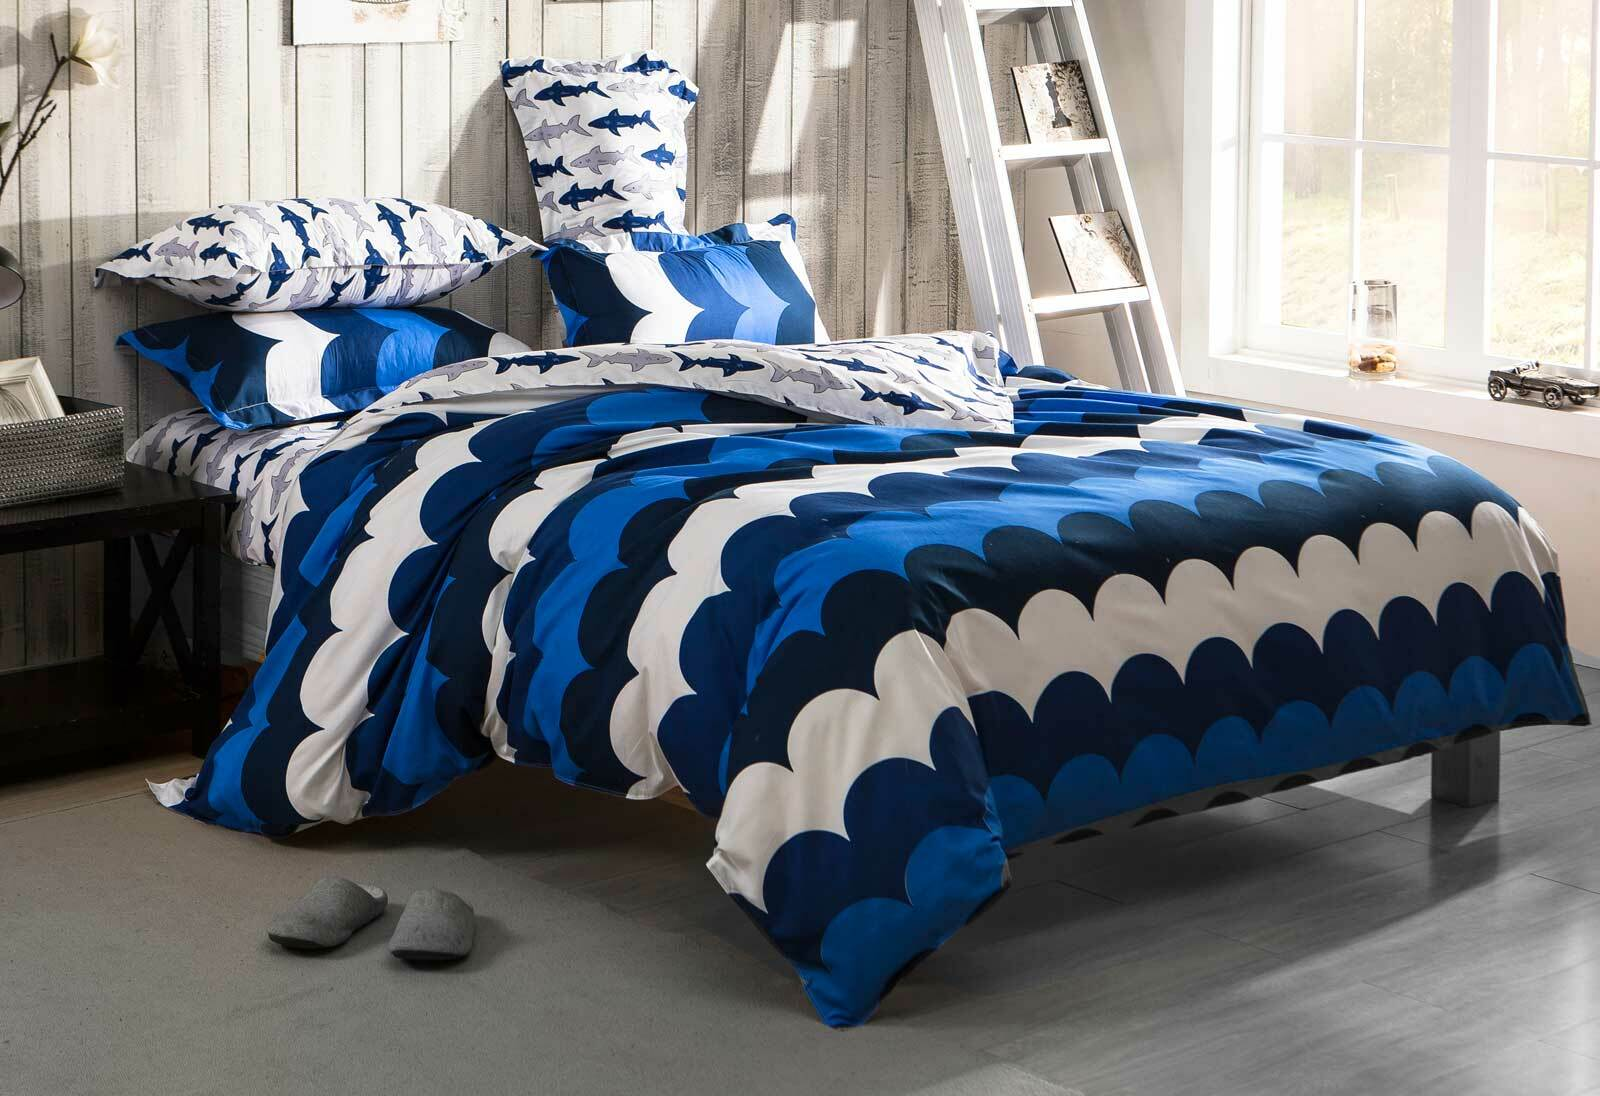 Queen Size Doona Covers Queen Size Surf On Bed Quilt Cover Set Navy Blue 3pcs